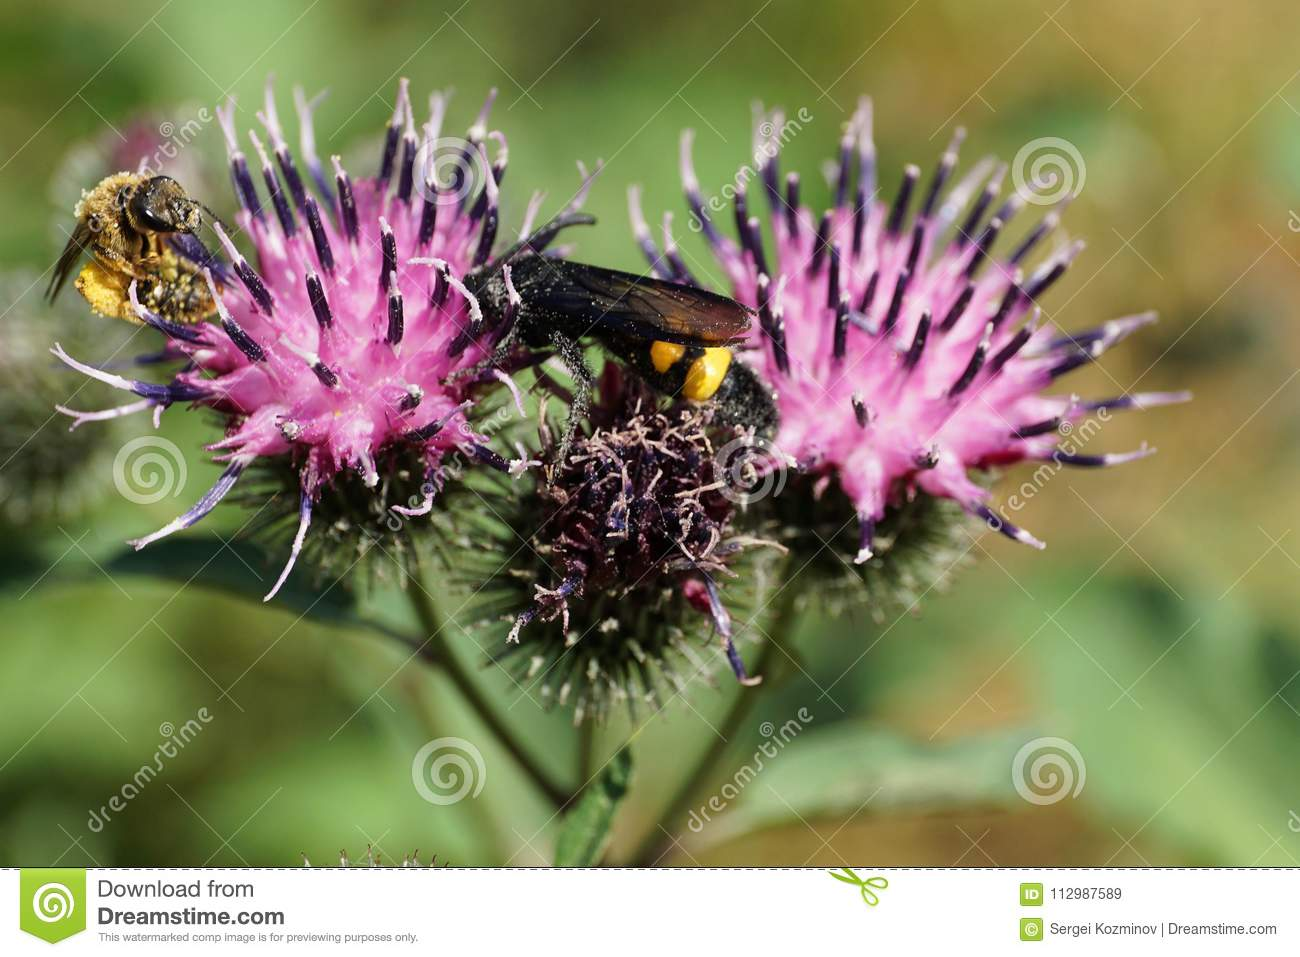 Close-up view of Caucasian black and yellow wasp Scolia hirta an